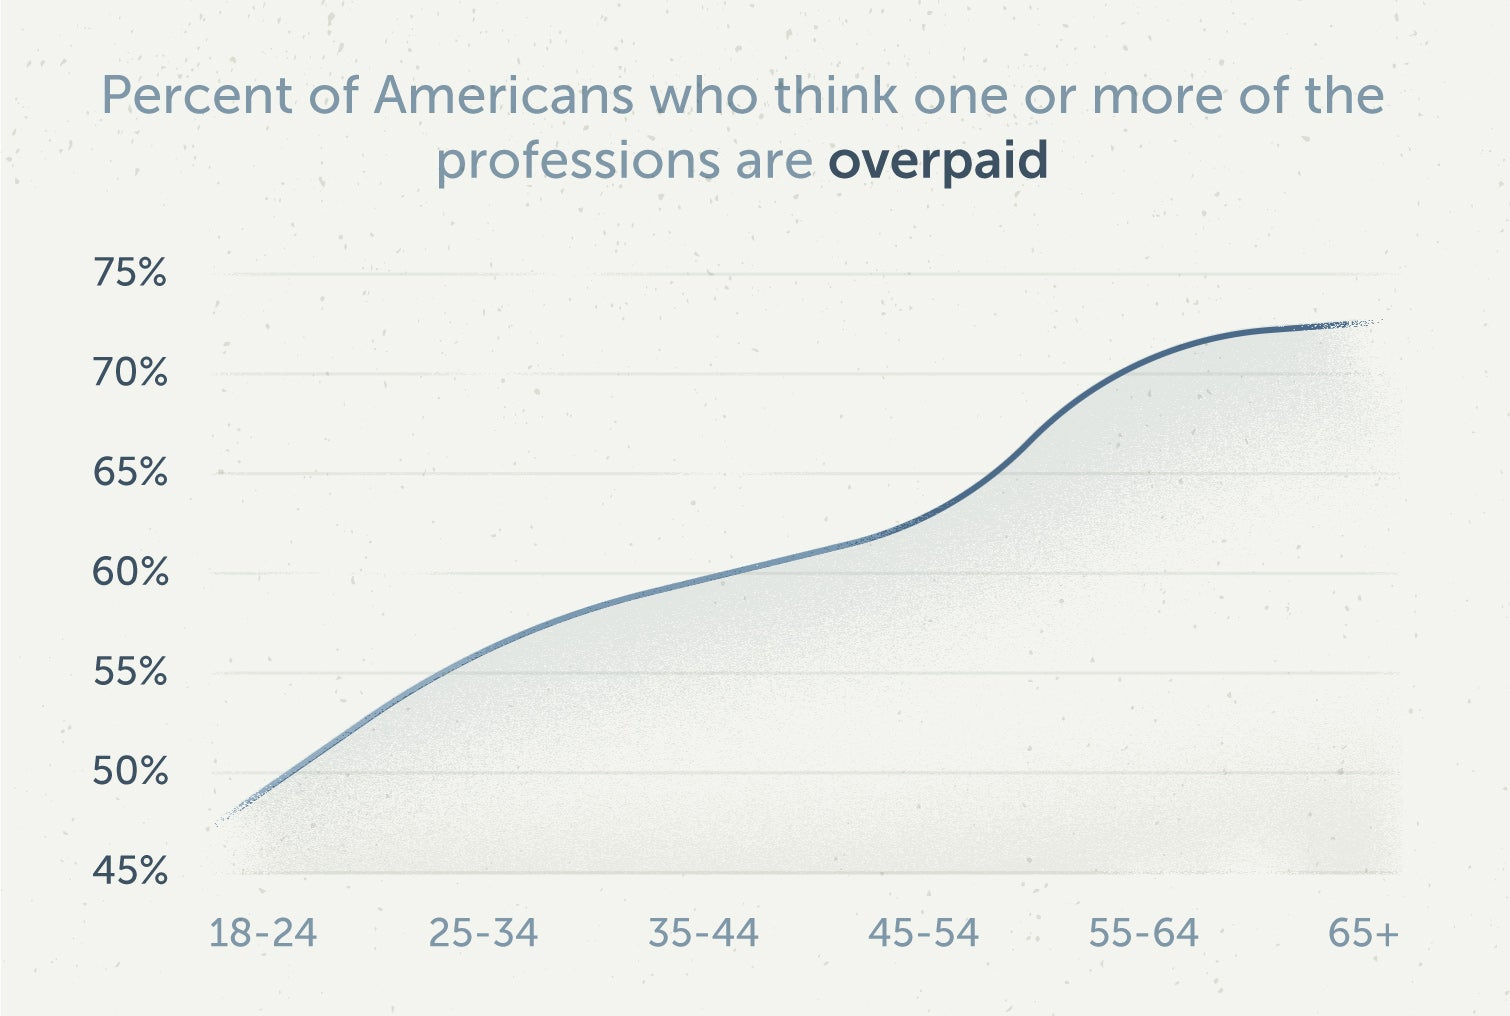 younger americans are less likely to think a profession is overpaid